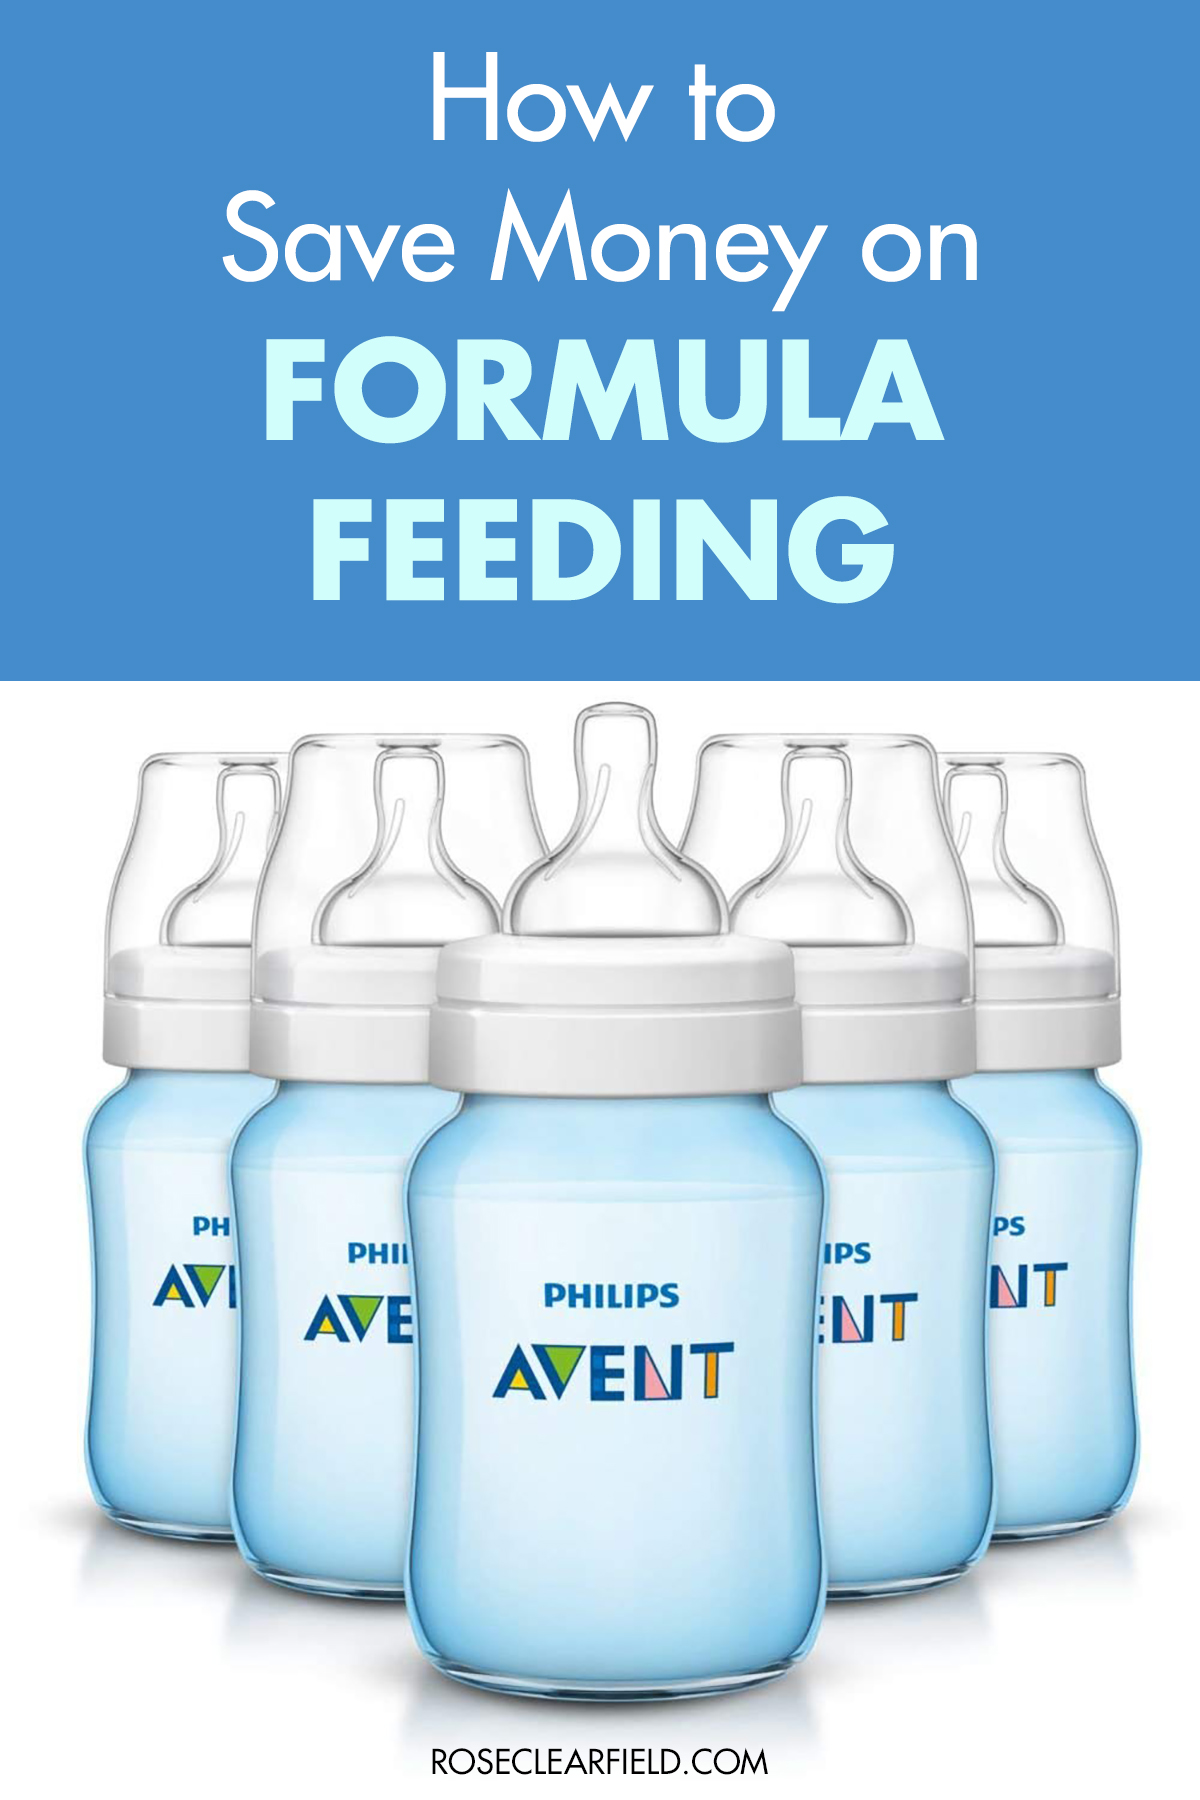 How to Save Money on Formula Feeding